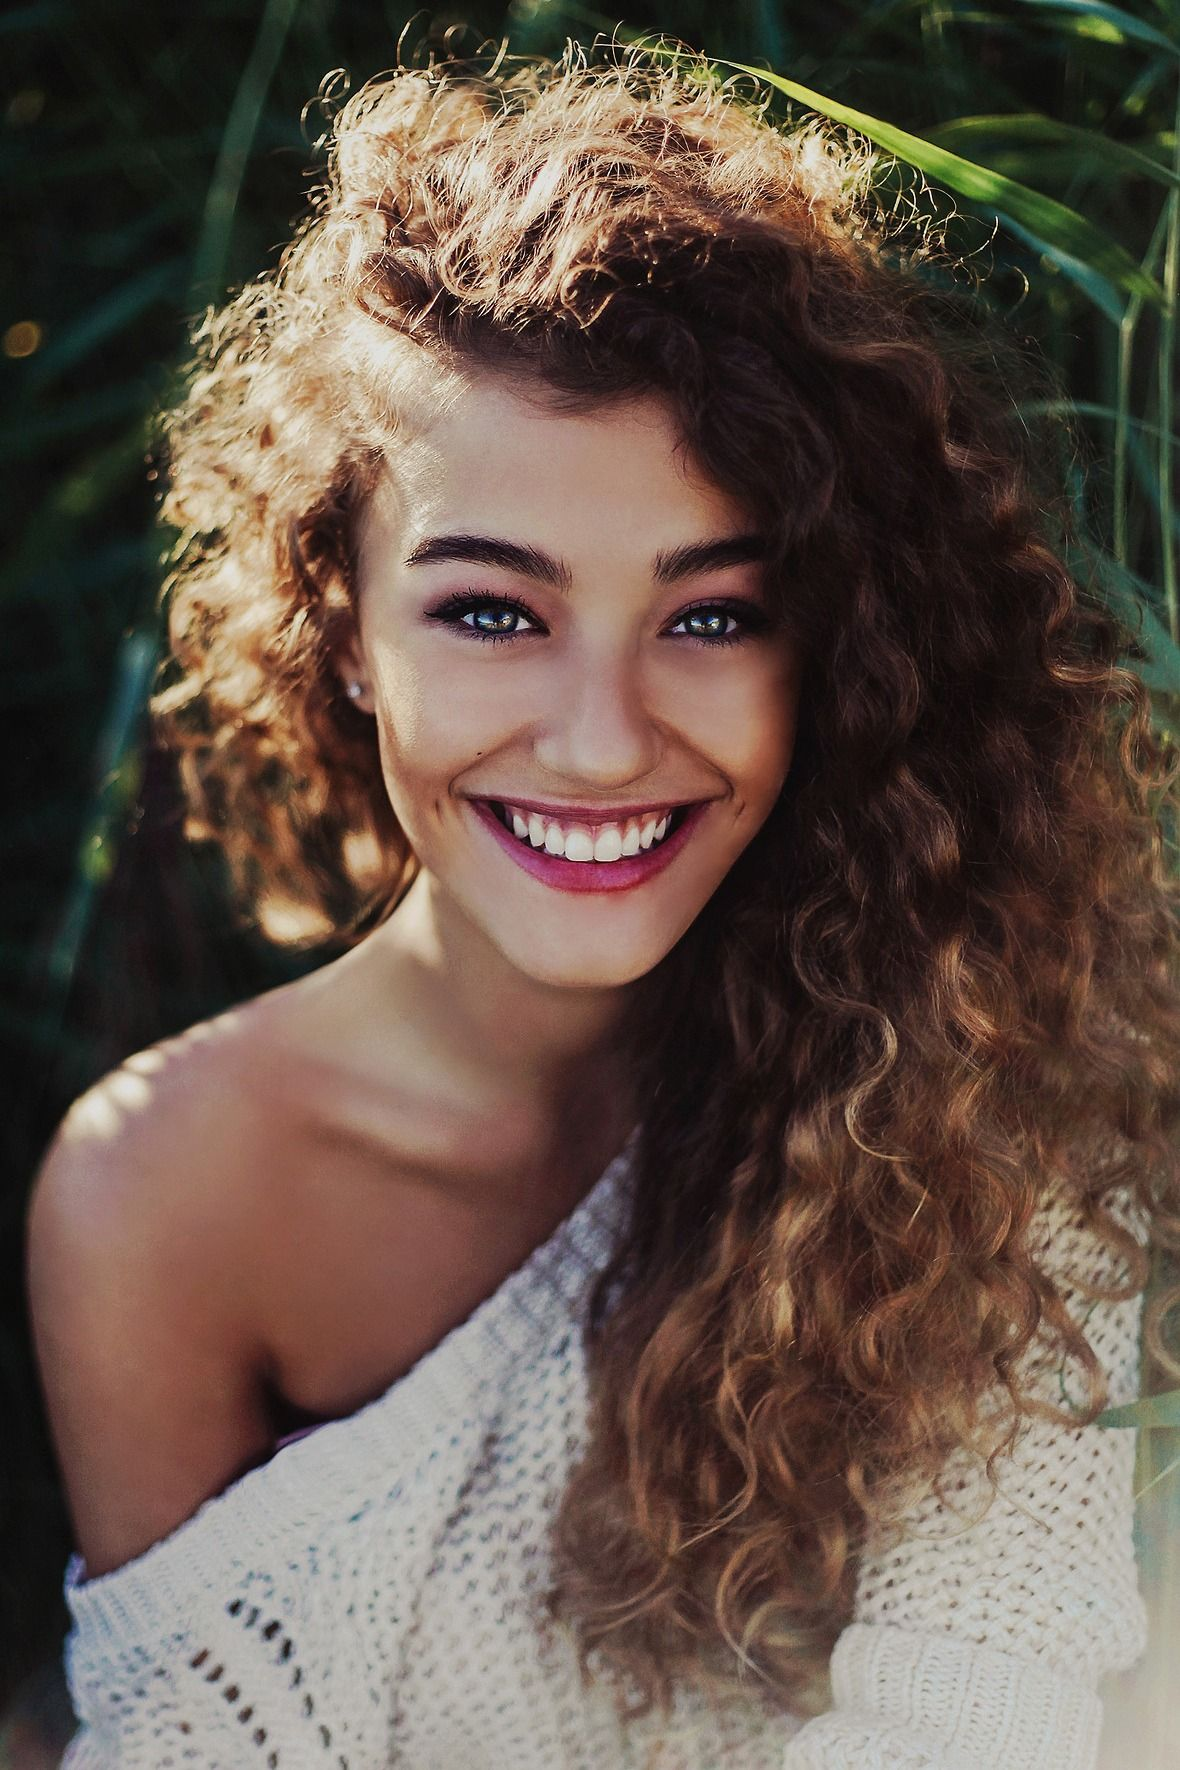 curly hair 101: how to get the best curls in hot weather